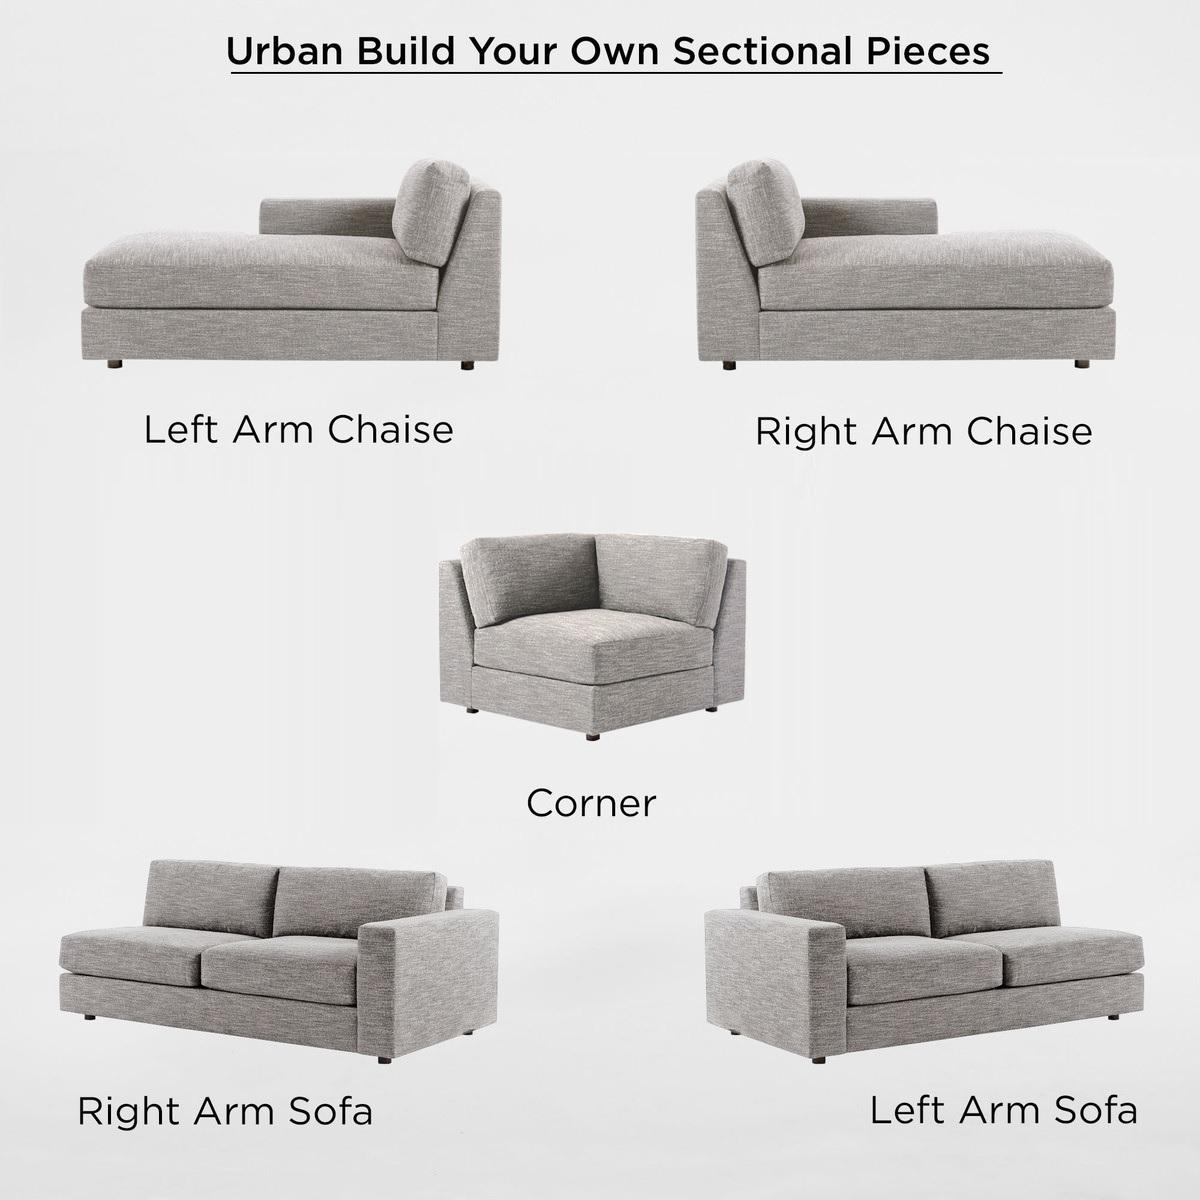 build your own urban sectional pieces cement heathered tweed west elm australia. Black Bedroom Furniture Sets. Home Design Ideas